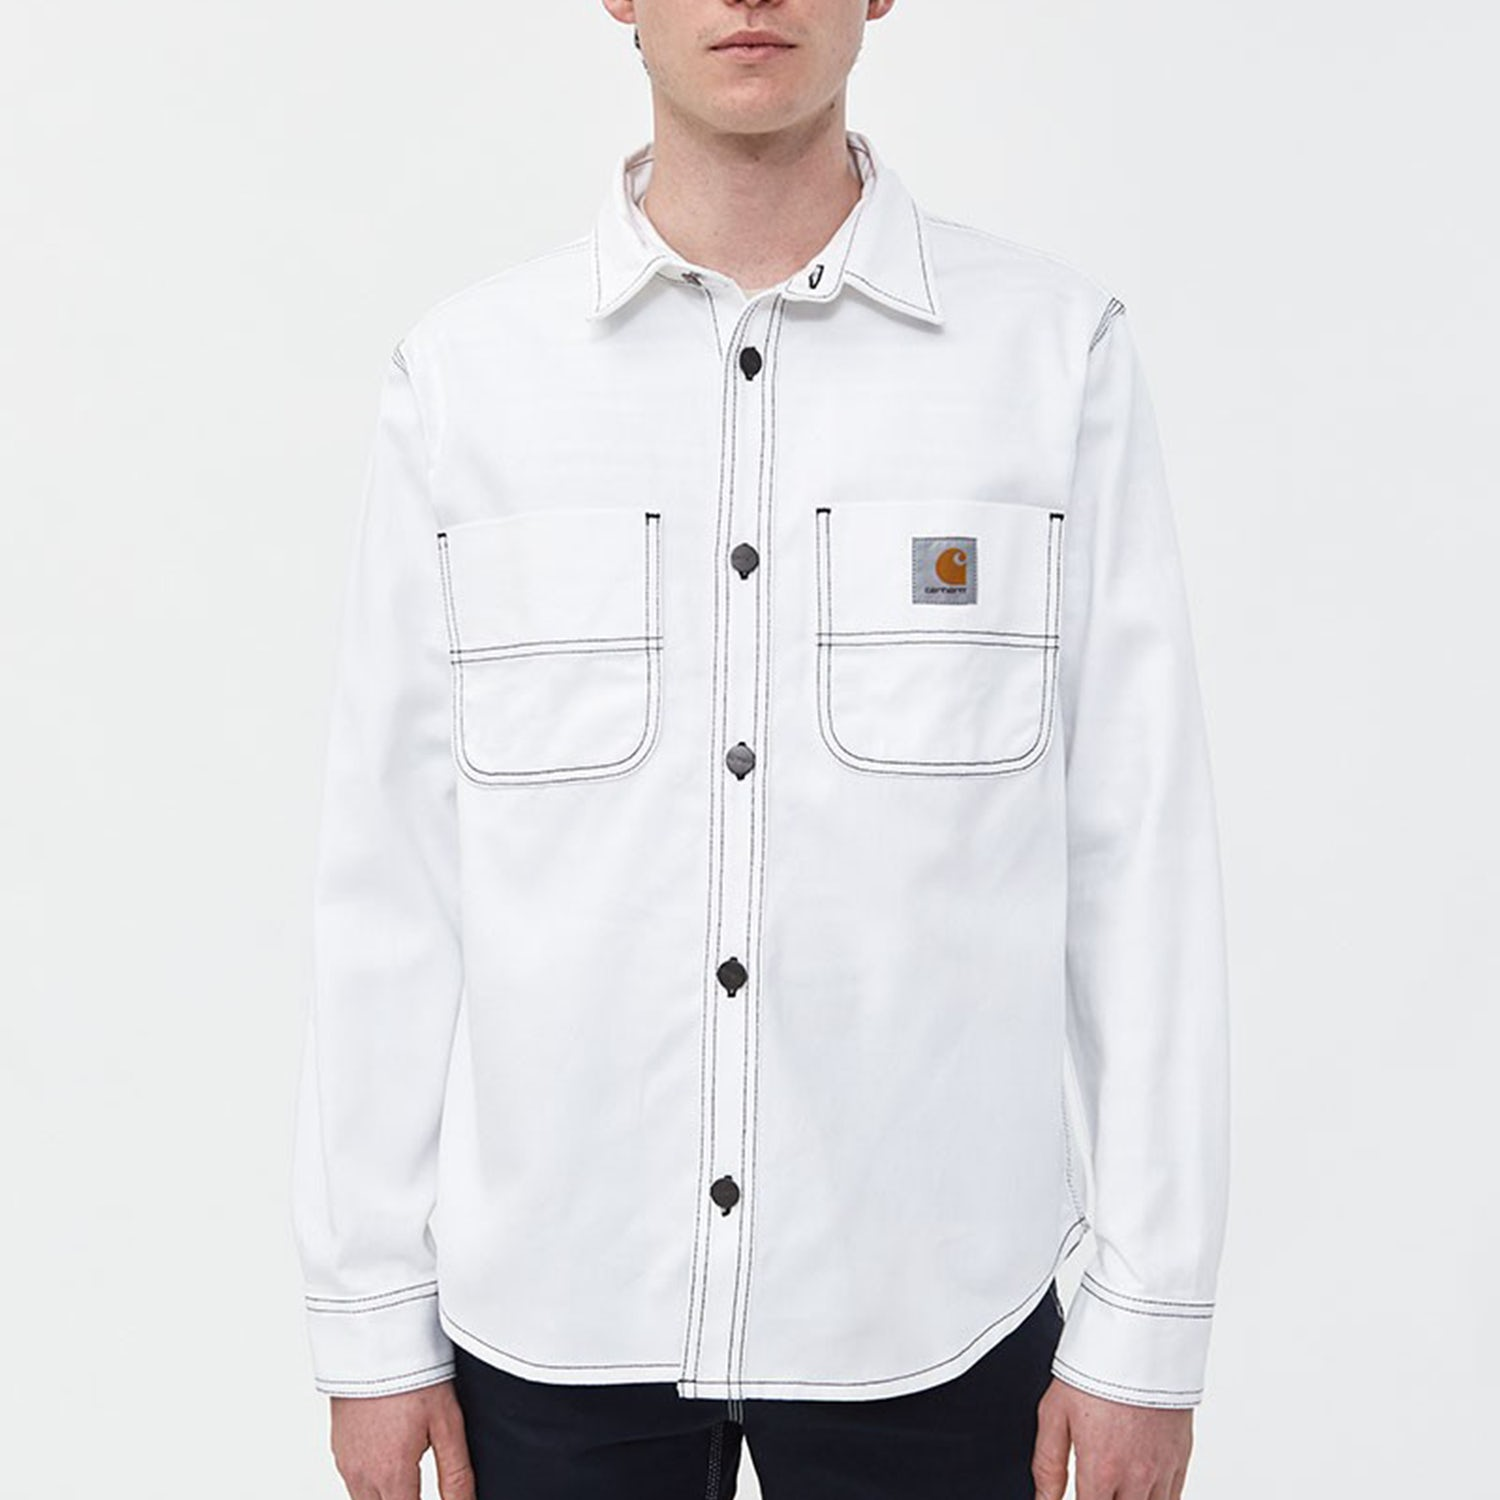 carhartt white button up